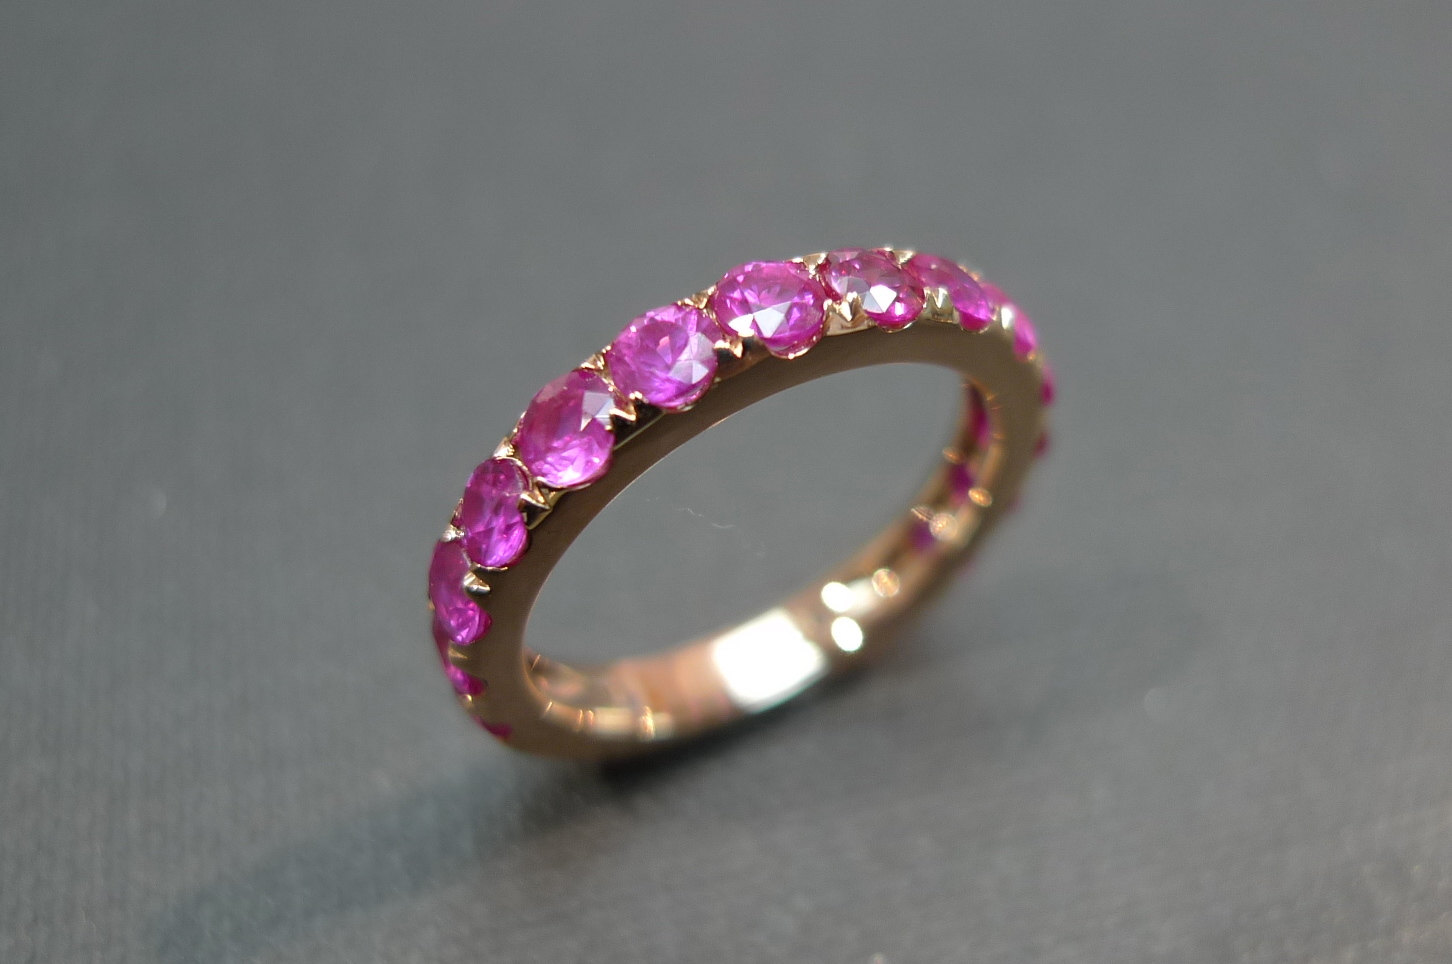 pink sapphire wedding band ring in 18k rose gold sapphire wedding band Pink Sapphire Wedding Band Ring in 18K Rose Gold